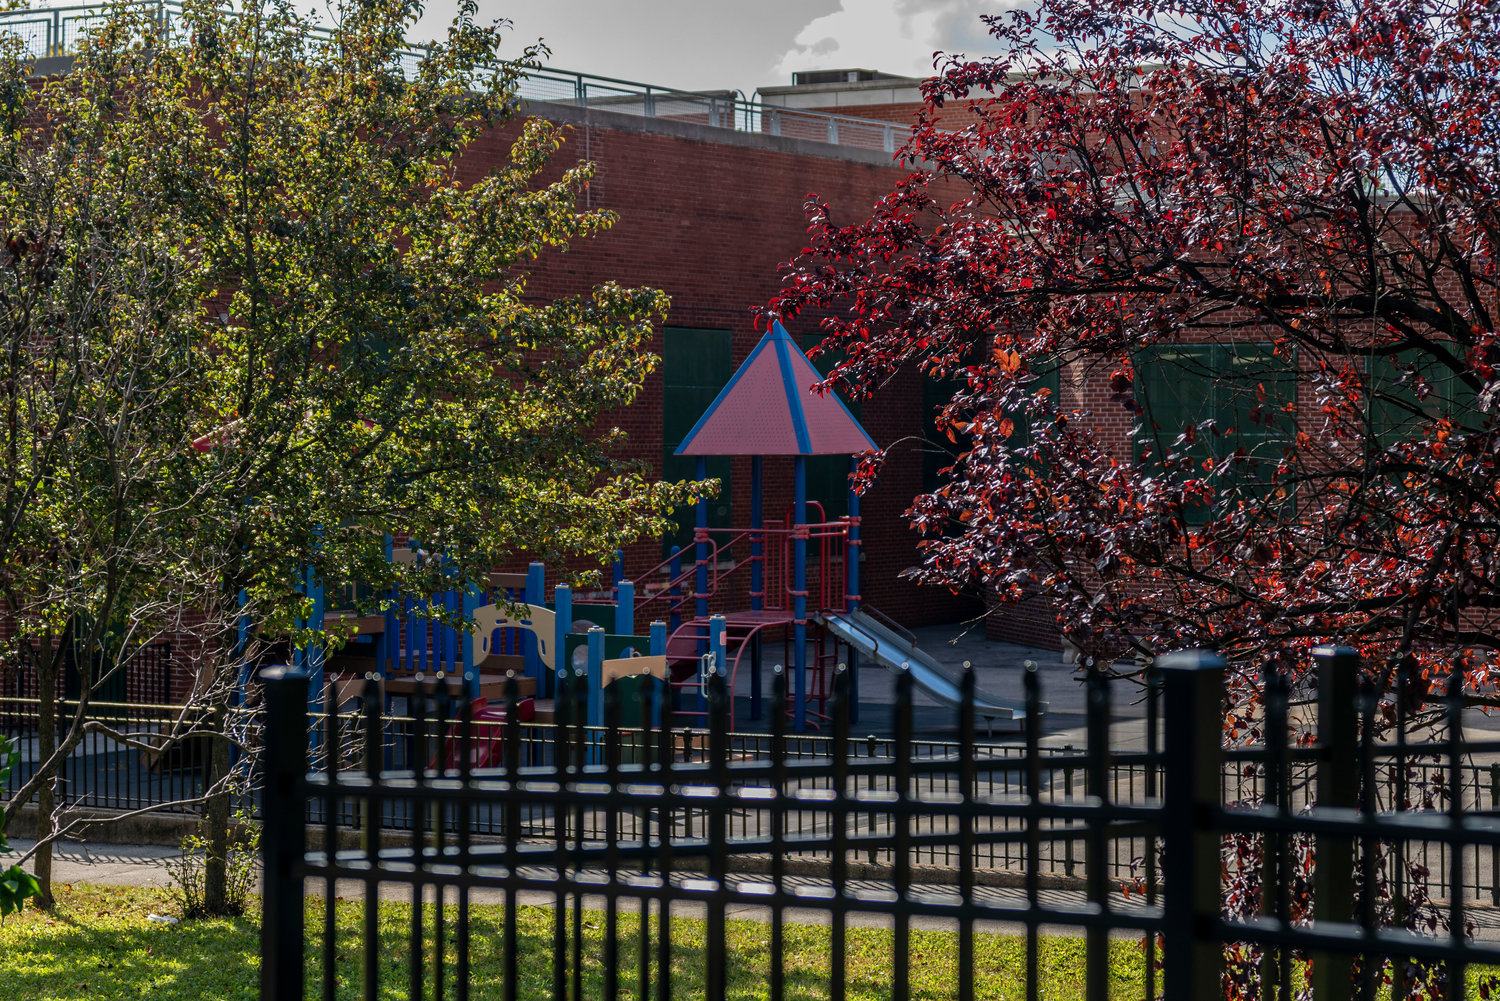 The playground at P.S. 24 Spuyten Duyvil will likely look a bit different this year, with mask wearing and social distancing strictly enforced. And while schools in this part of the Bronx are largely devoid of issues for the time being, daily coronavirus test rates are seeing an uptick in some parts of Brooklyn and Queens.